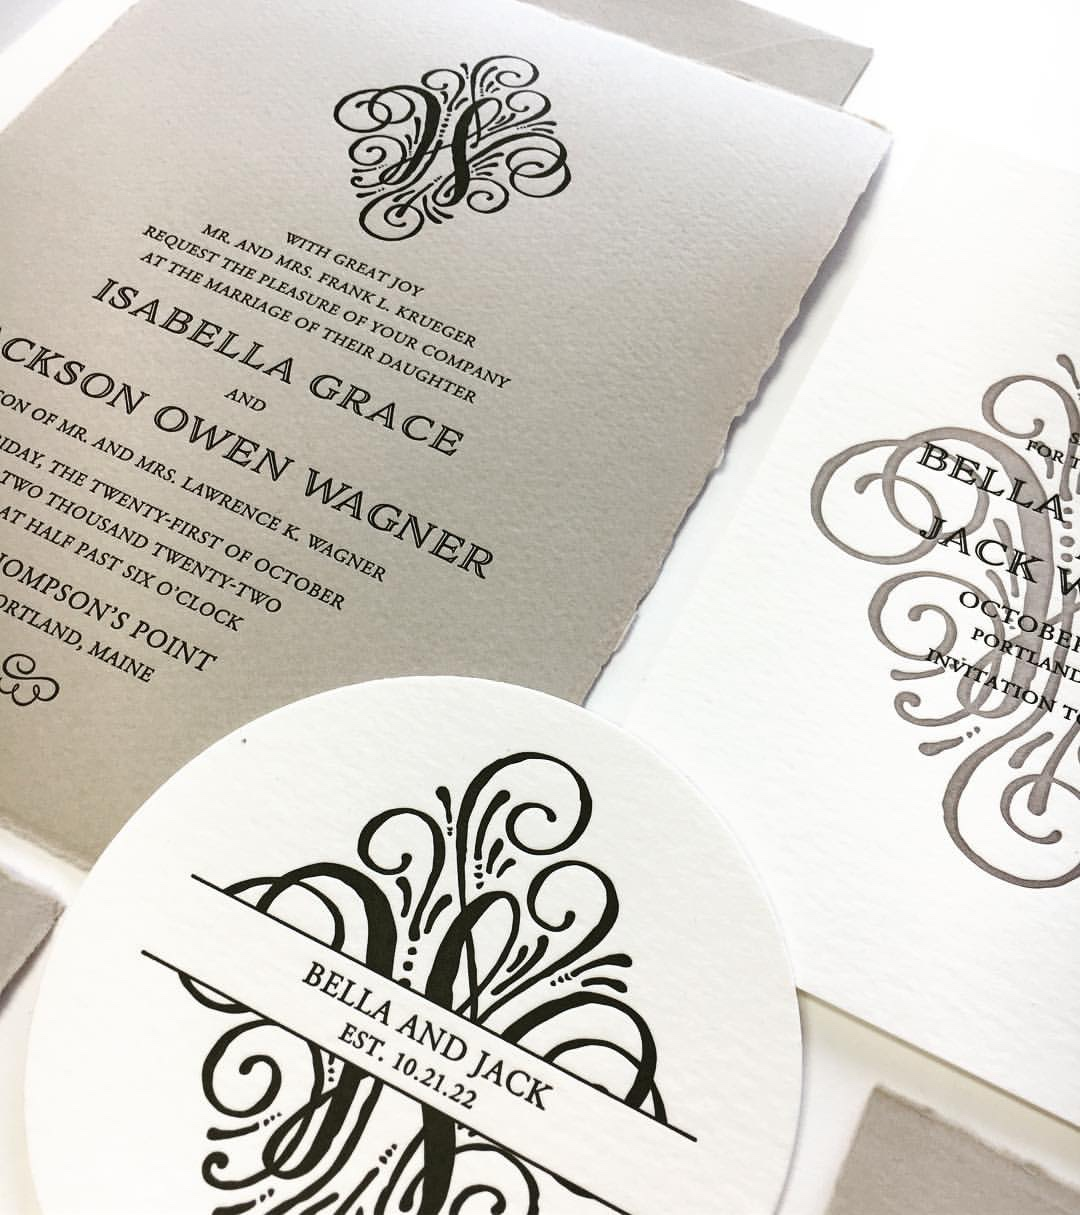 Stunningly ornate monogram is the focus of this beautiful textured invitation suite.